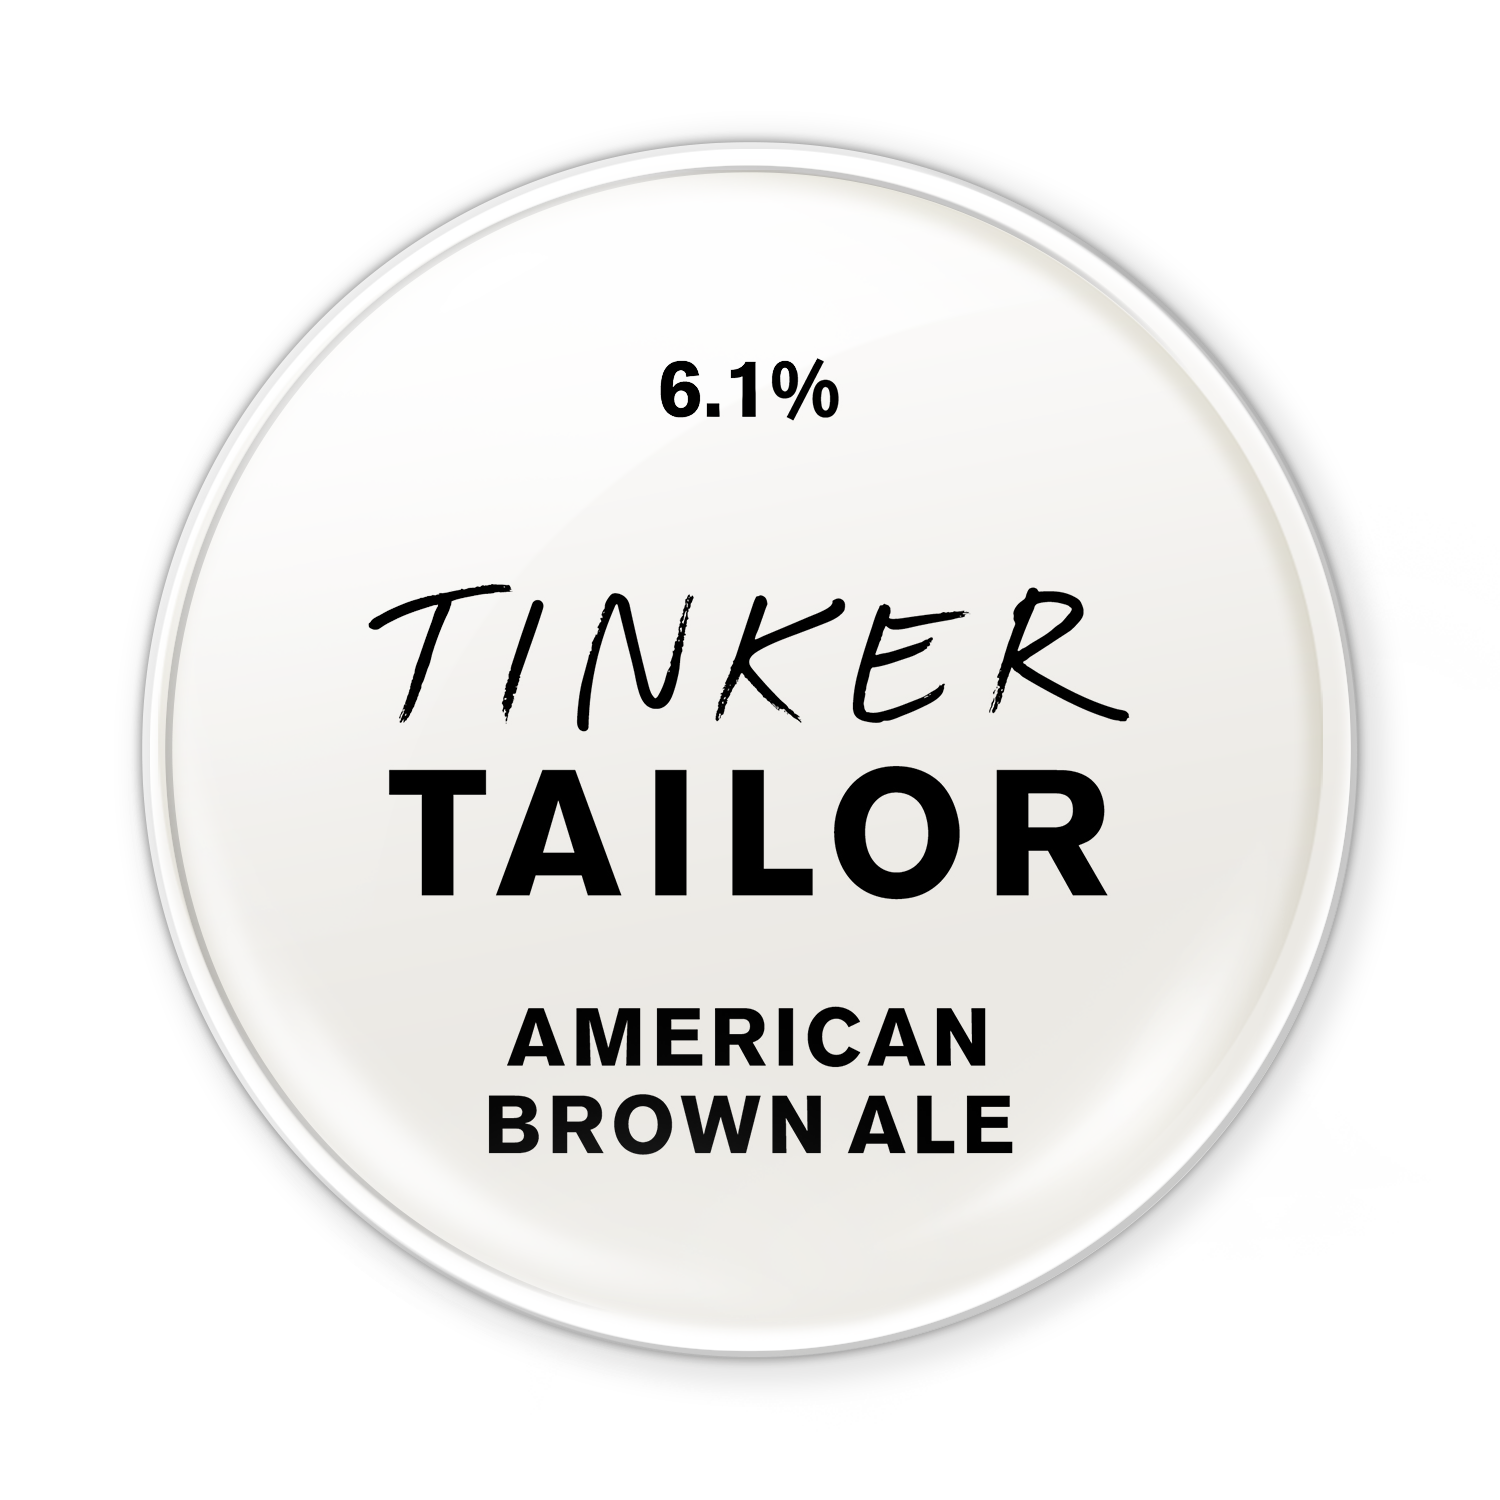 American Brown Ale - Our American Brown Ale is tailored true-to-style. Discover a delicious blend of big malt flavours, golden caramel and a hint of buttery chocolate. Smooth, subtle and satisfying. Pairs well with most foods. Perfectly complements a BBQed steak or chargrilled kumara.6.1%